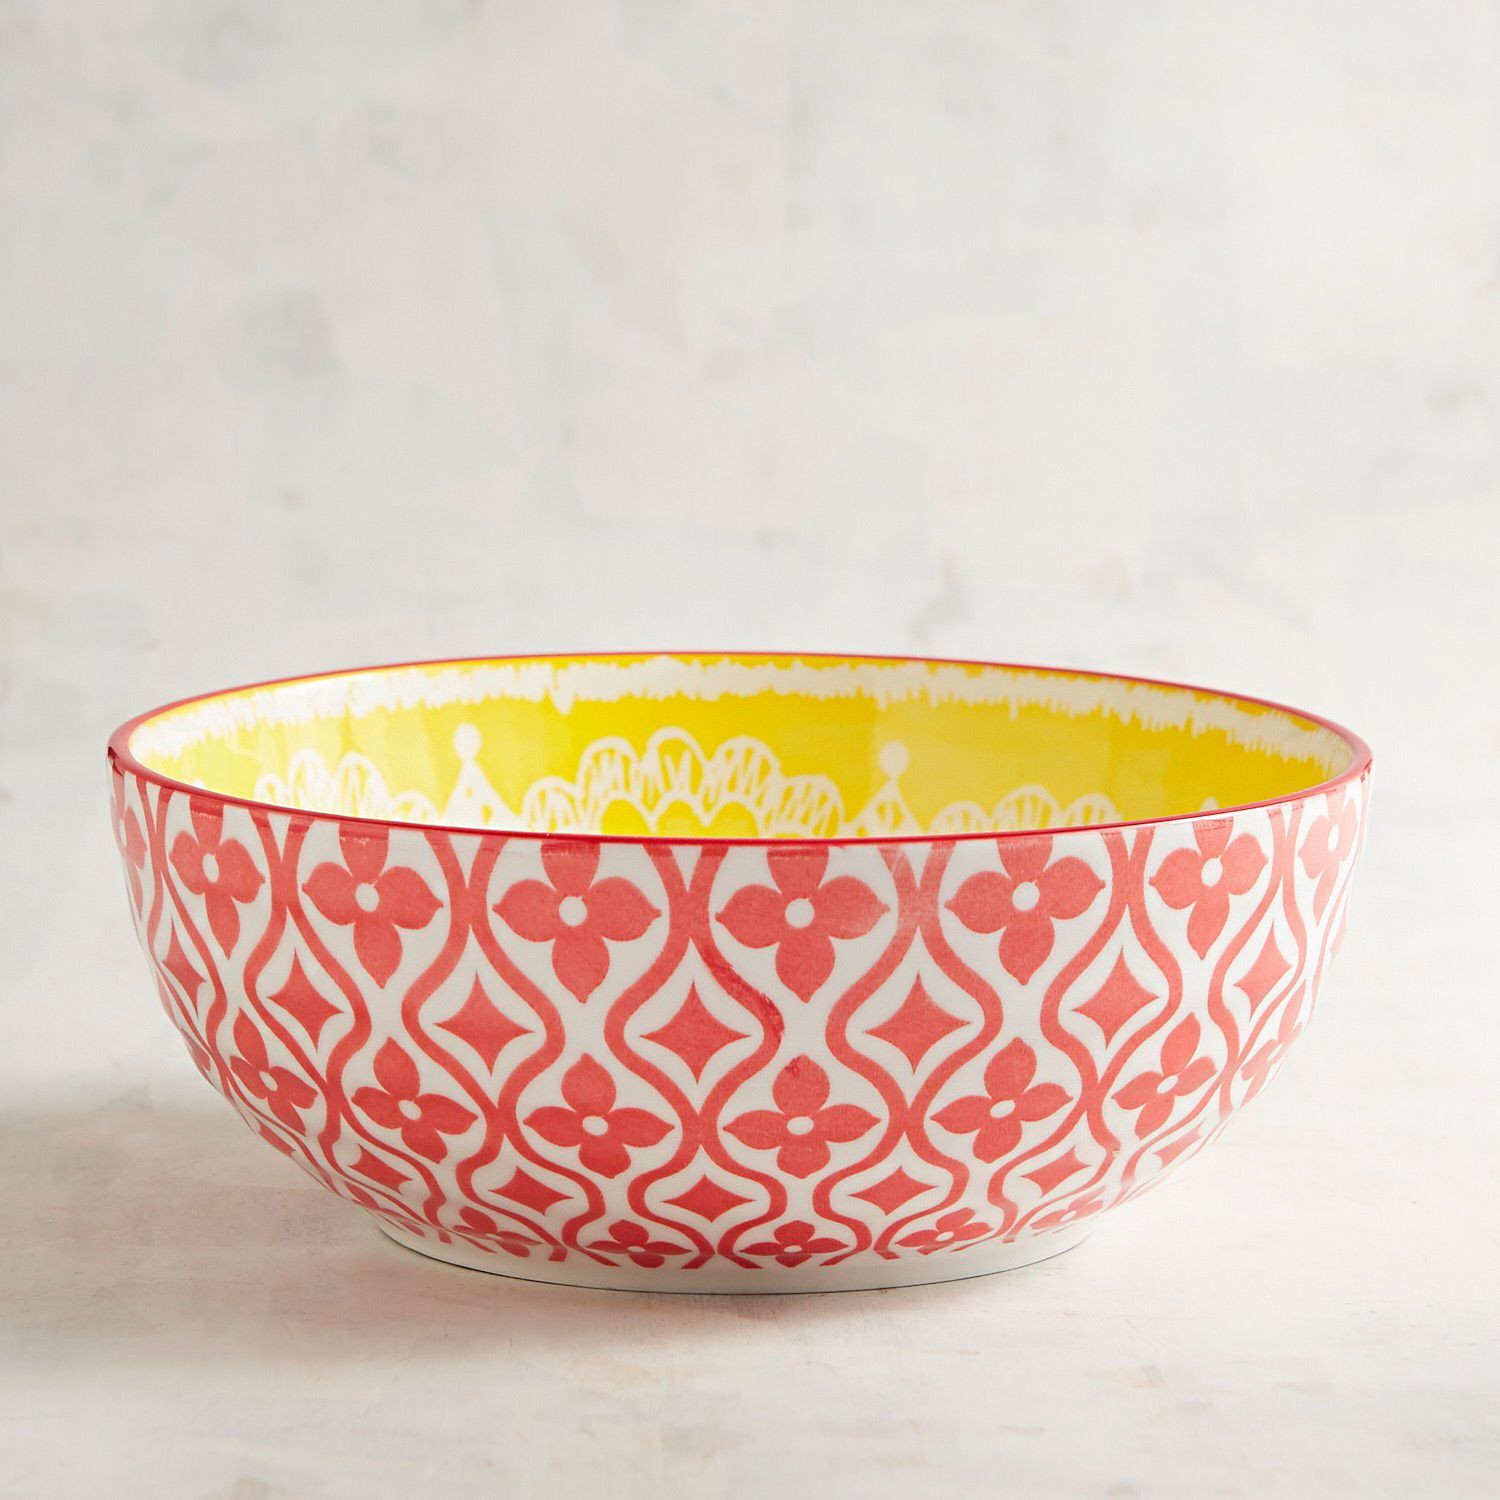 Parks Large Yellow Medallion Pad Print Bowl Pier 1 Imports Patterned Dishes Dinnerware Sets Dinnerware Patterns